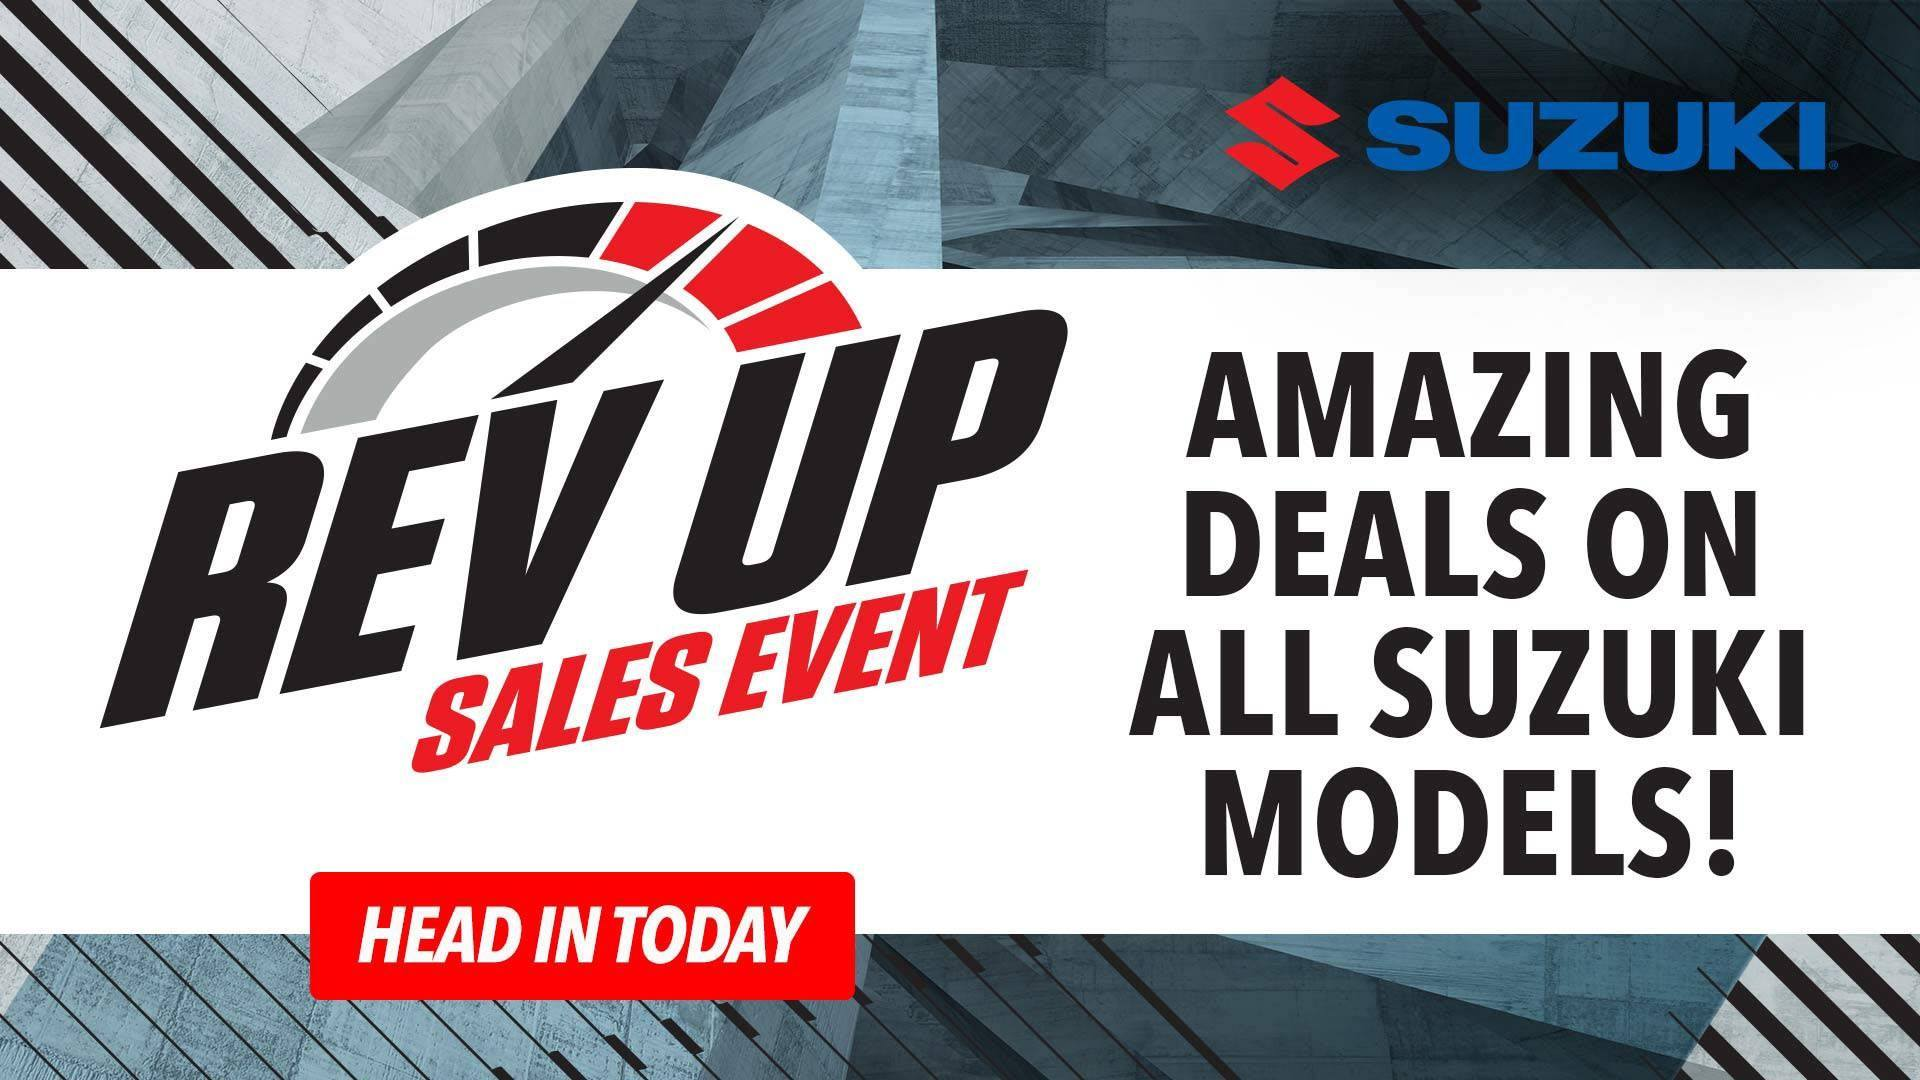 Suzuki - Rev Up Sales Event